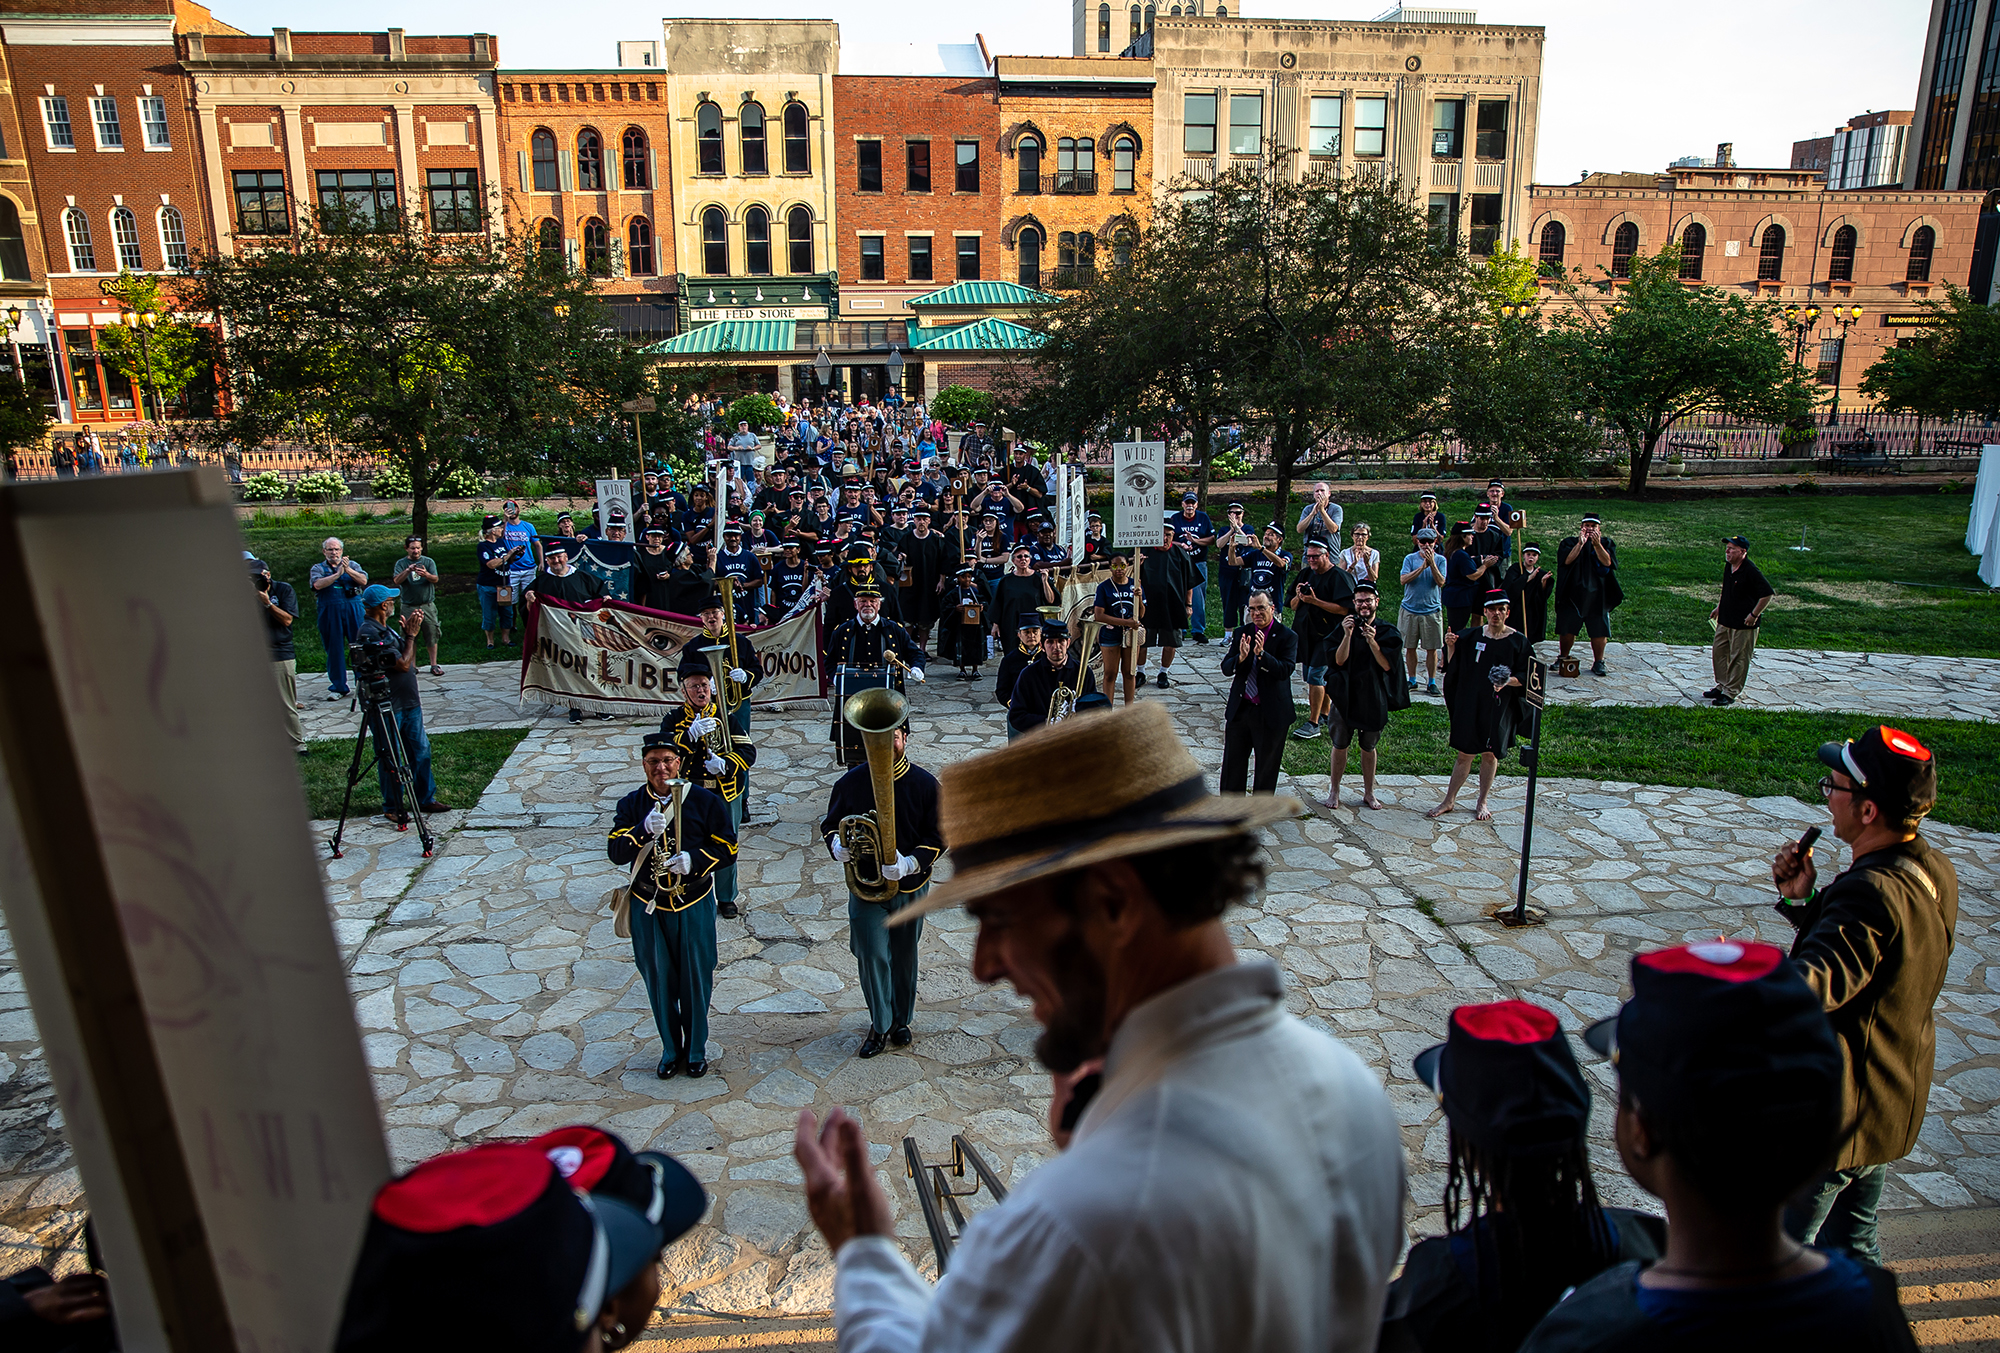 Members of the 10th Illinois Volunteer Cavalry RegimentBand are joined by the Wide Awakes after marching to the Old State Capitol from the Lincoln home during the Lincoln Wide Awake Parade, a re-enactment of an 1860 parade to support Abraham LincolnÕs presidential candidacy, Saturday, Aug. 4, 2018, in Springfield, Ill. The Wide Awakes, who wore black caps and black hats when they marched, got their name from a small group of young self-named supporters who impressed Lincoln at a political rally, according to the Journal of American History. [Justin L. Fowler/The State Journal-Register]